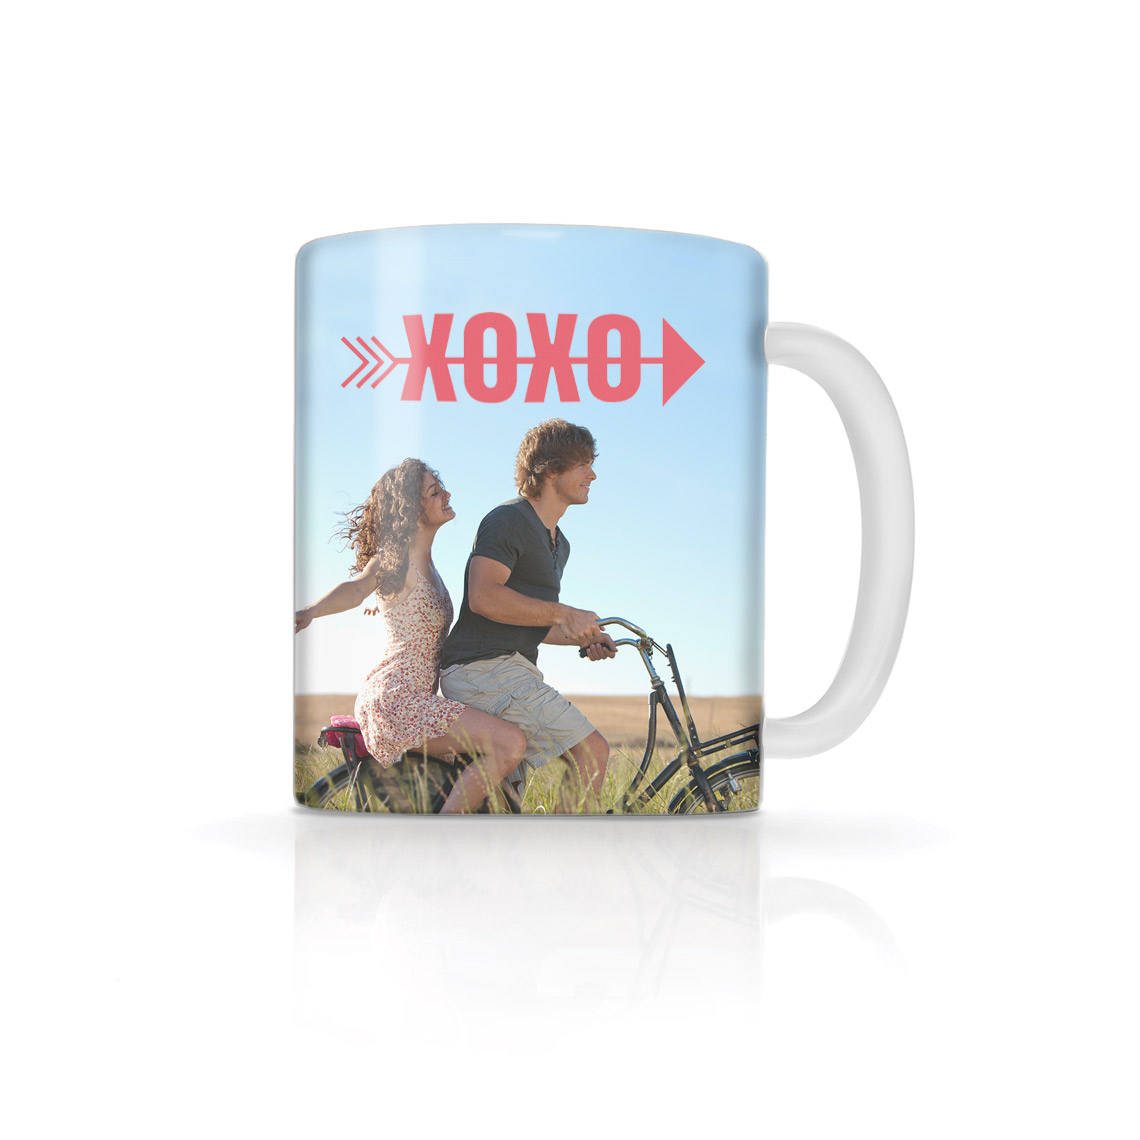 Personalized coffee mugs raleigh nc - 11 Oz Photo Mug